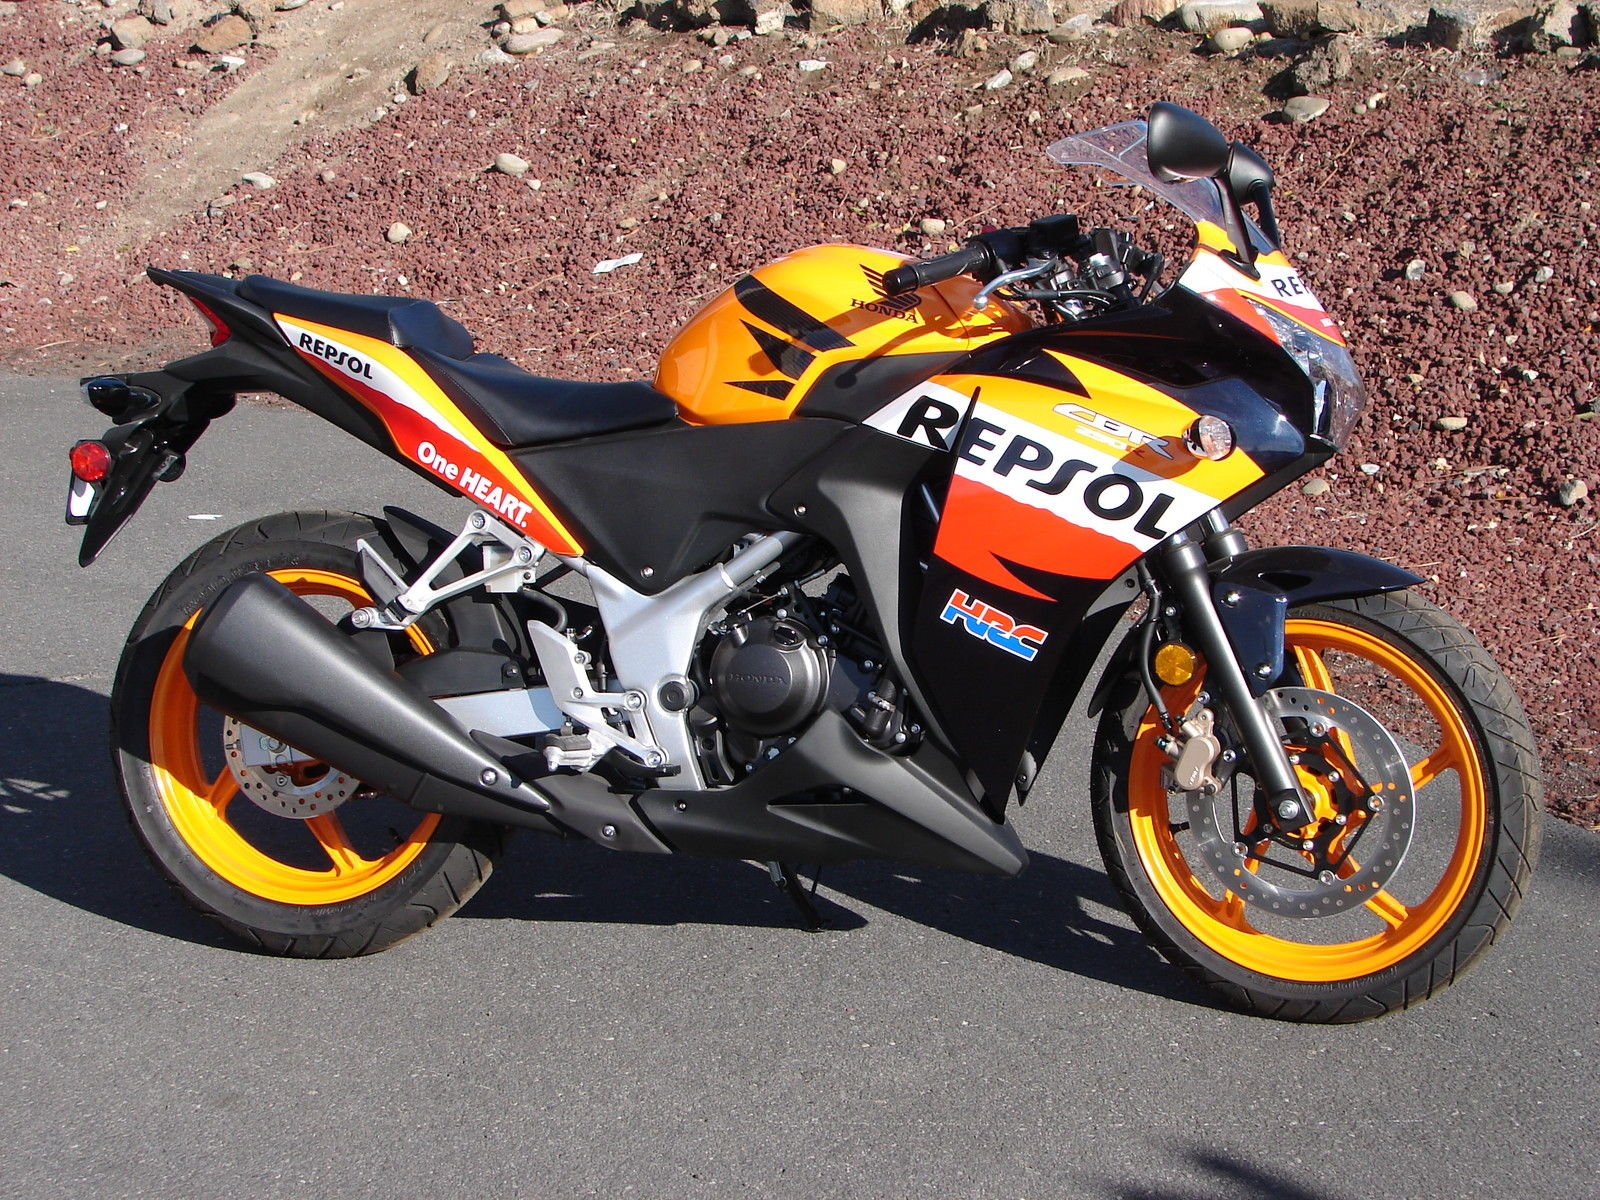 Honda CBR 250 Repsol Edition One Mile! GREAT BUY!! Be Ready To Ride!!!